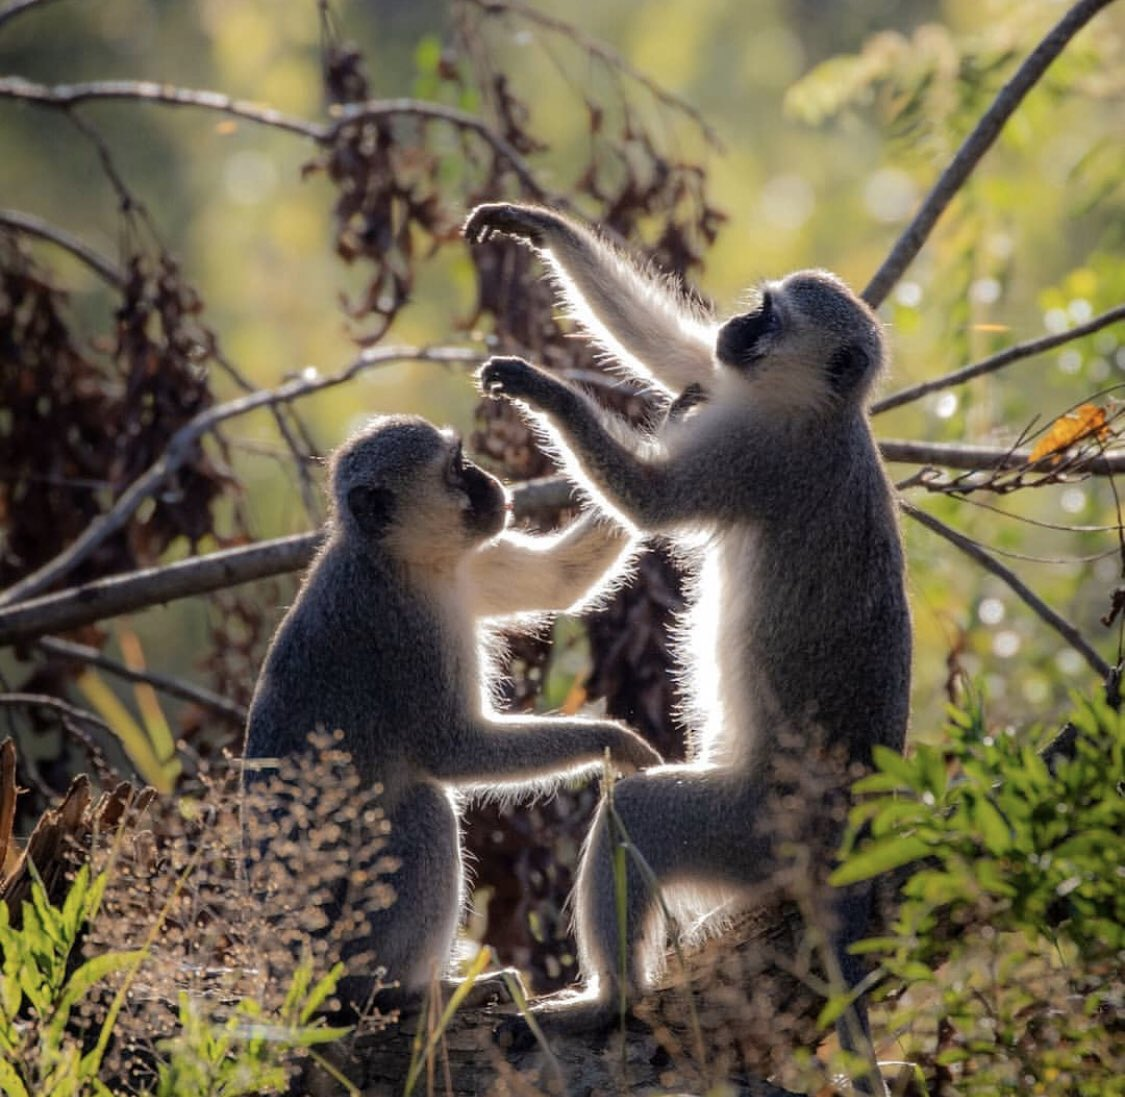 Monkeys are some of the most charismatic animals in Africa. Watching them in their natural habitat is always amazing .pic.twitter.com/5lt80PzUJR